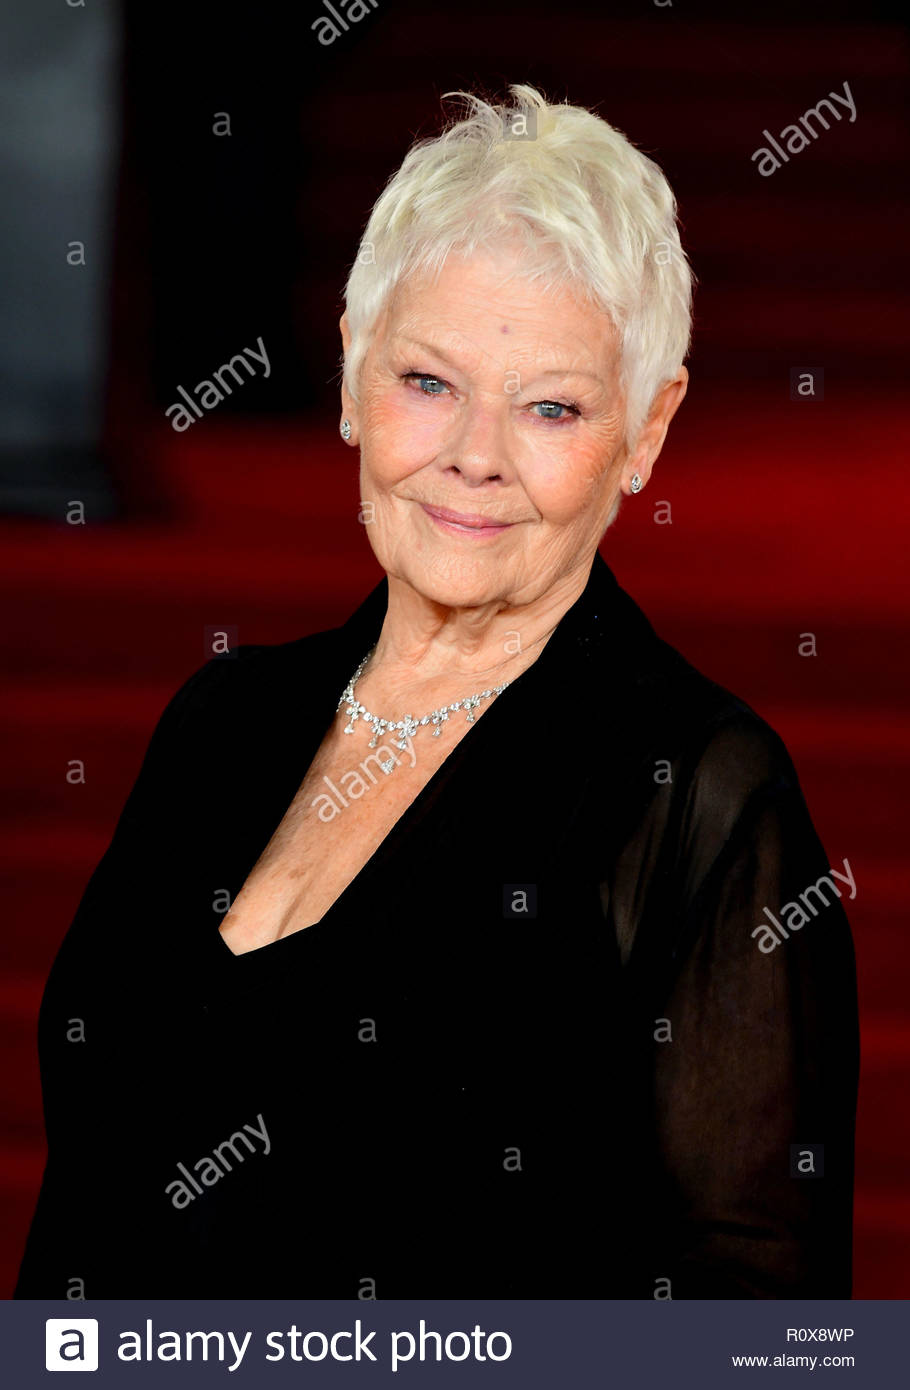 File photo dated 2/11/2017 of Dame Judi Dench who has been named as the new patron of London's Omnibus Theatre, to mark the venue's fifth anniversary. ASSOCIATION Photo. Issue date: Wednesday November 7, 2018. The actress joins members of the arts and theatrical community, including Sir Michael Gambon and the Old Vic's artistic director Matthew Warchus, as a patron for the off-West End theatre in Clapham, south-west London. See PA story ARTS Dench. Photo credit should read: Ian West/PA Wire - Stock Image